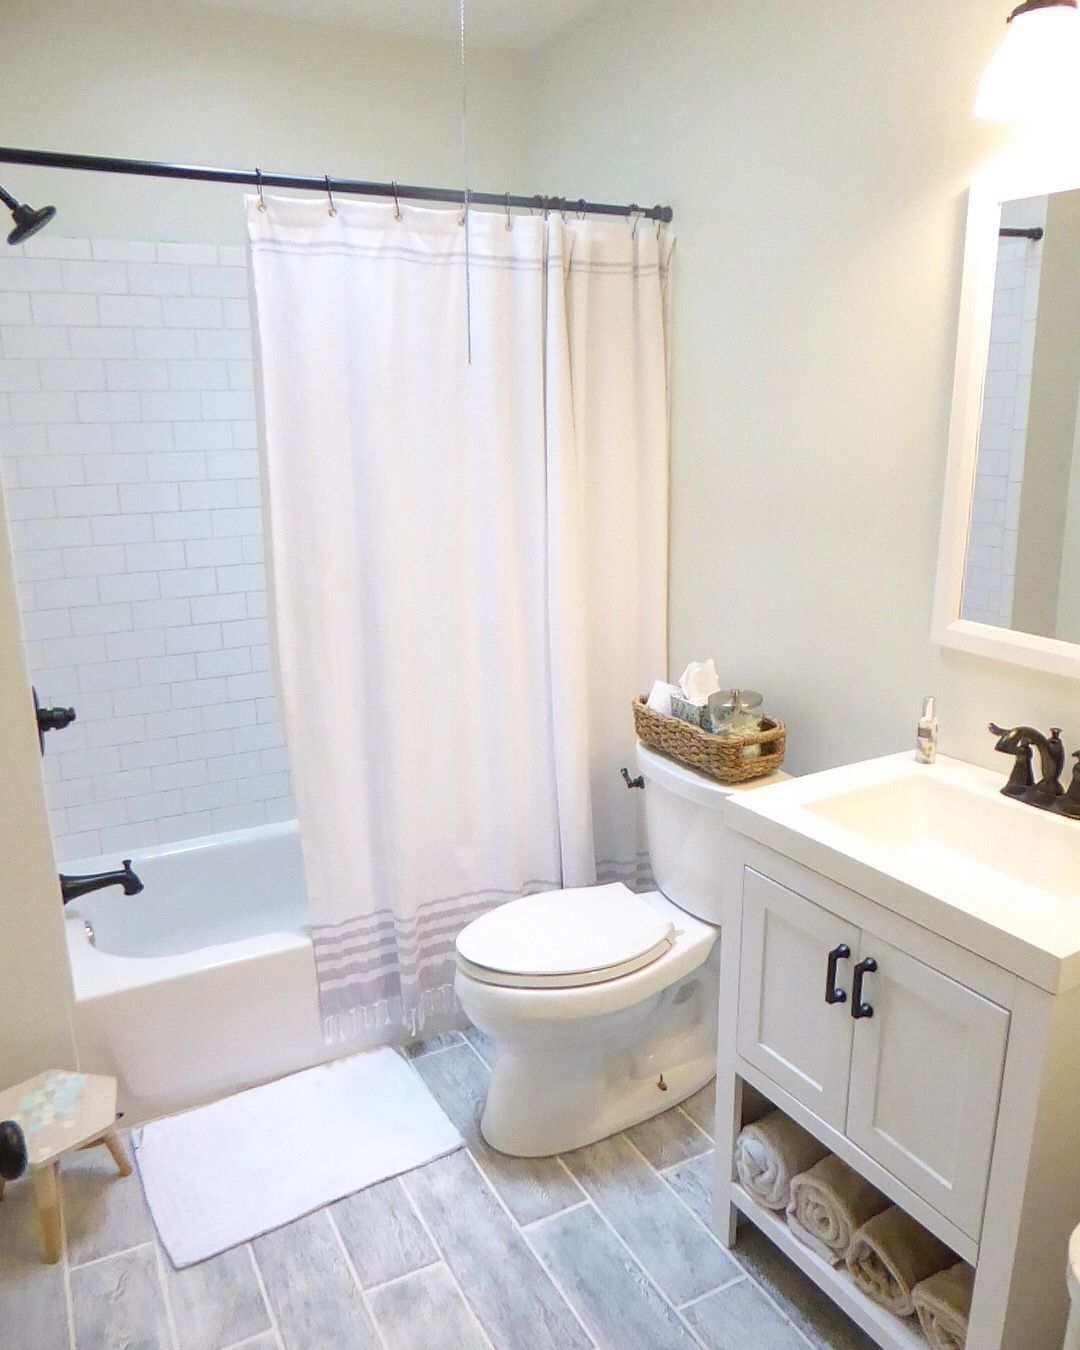 Small bathroom remodel. Clean and bright, grey floors, white subway ...